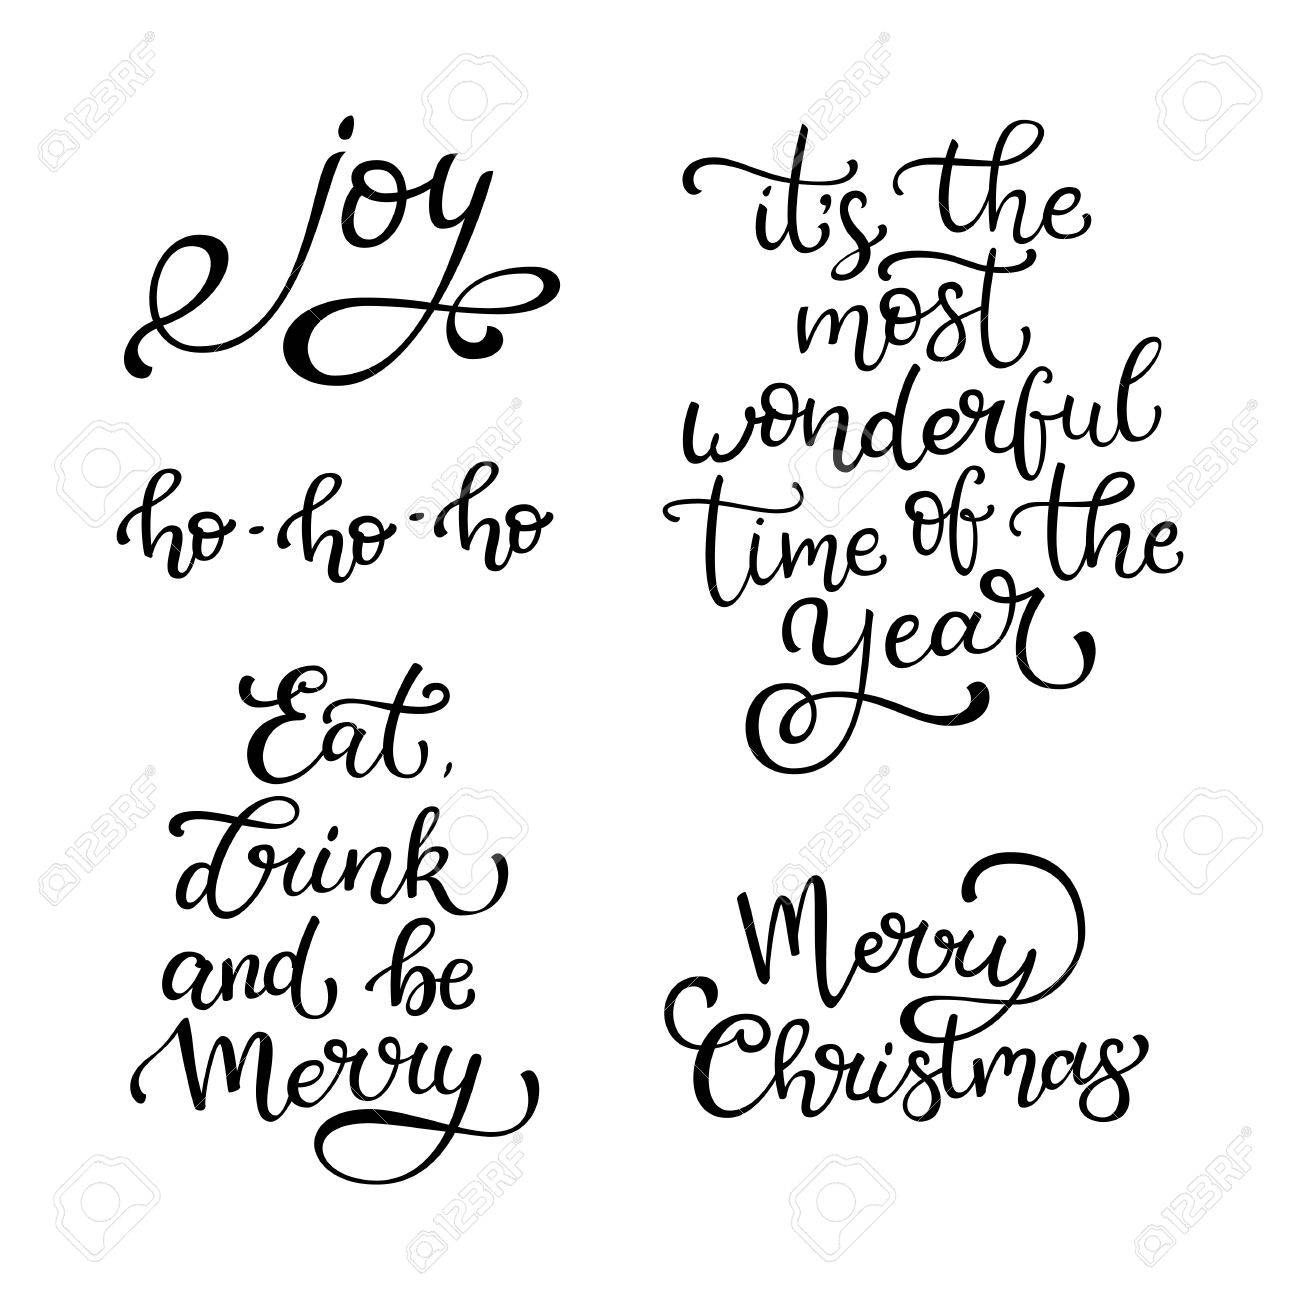 Quotes For Christmas Set Of Hand Drawn Vector Quotesmerry Christmasjoyeat Drink